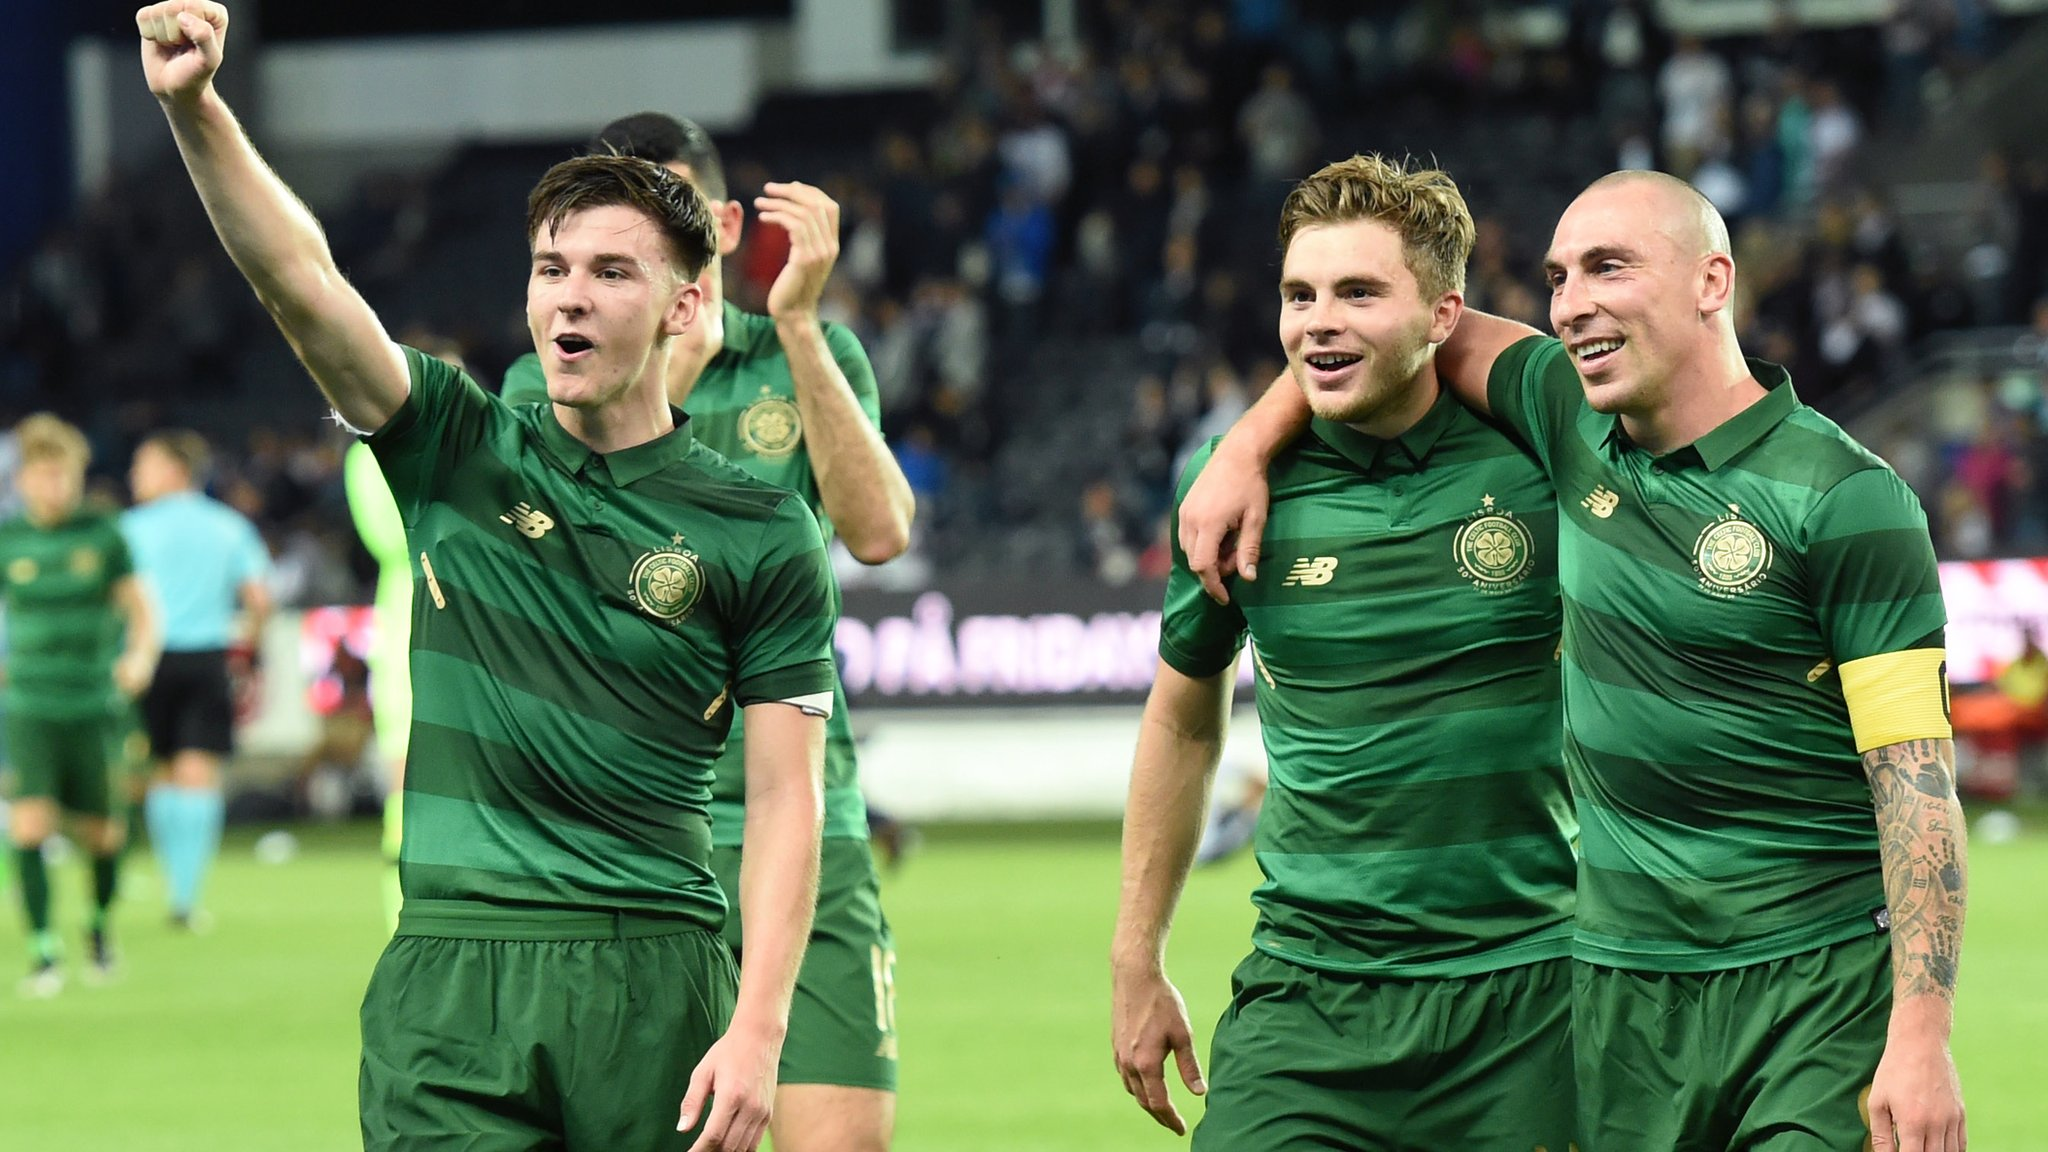 Celtic begin Champions League qualifying campaign in Armenia